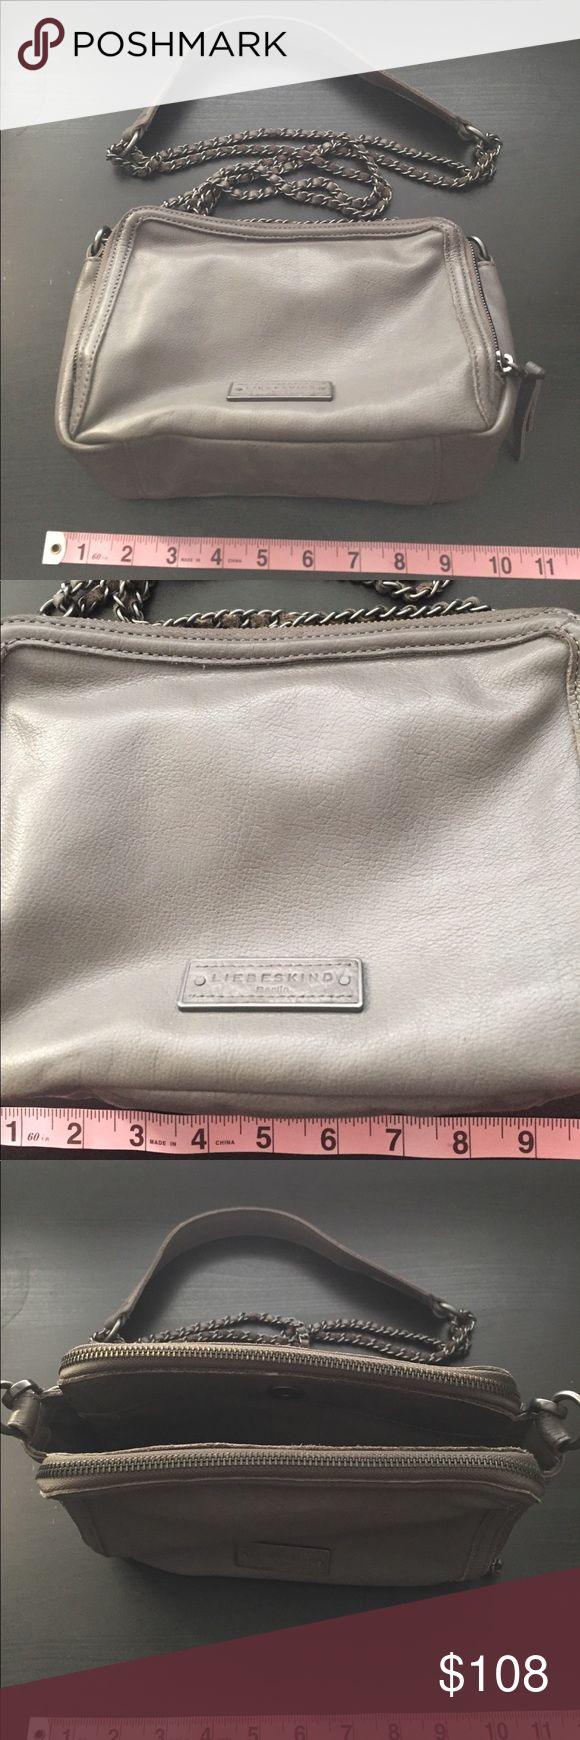 LIEBESKIND - Leather bag LIEBESKIND original - Grey leather cross body bag with double chain straps with leather weaved throughout the straps.  2 zippered compartments and the middle compartment has a magnetic closure. One small pocket in one compartment. Bags Crossbody Bags